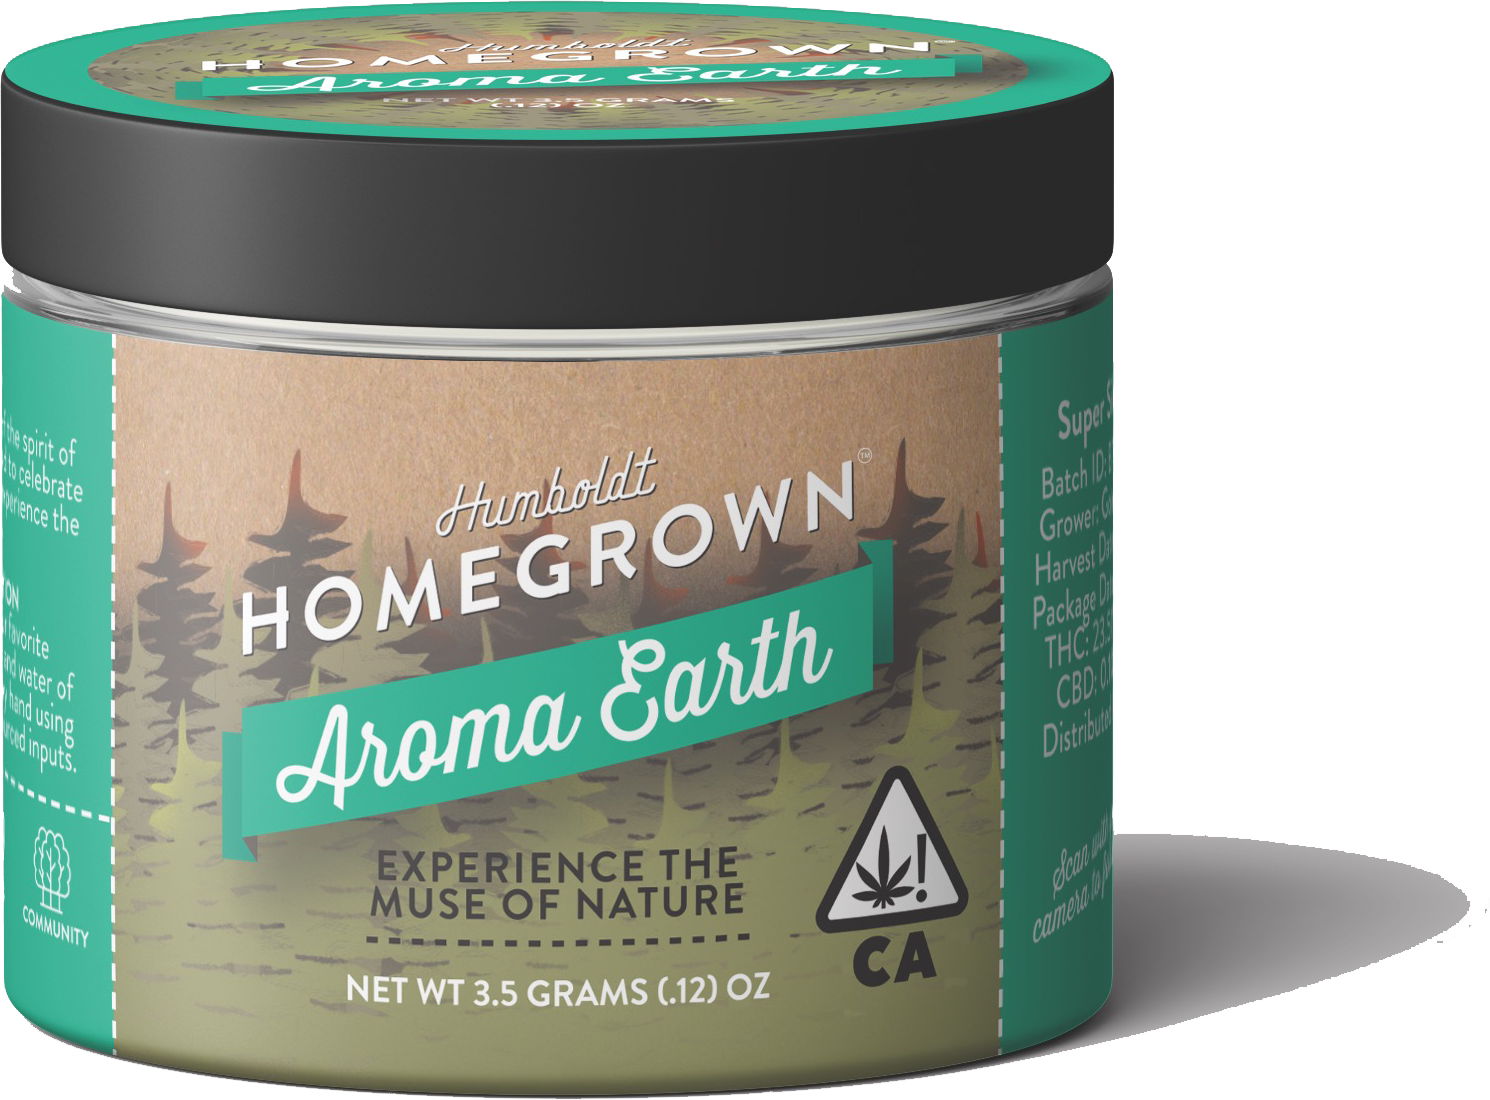 Humboldt Homegrown Aroma Earth Organically Sourced Cannabis